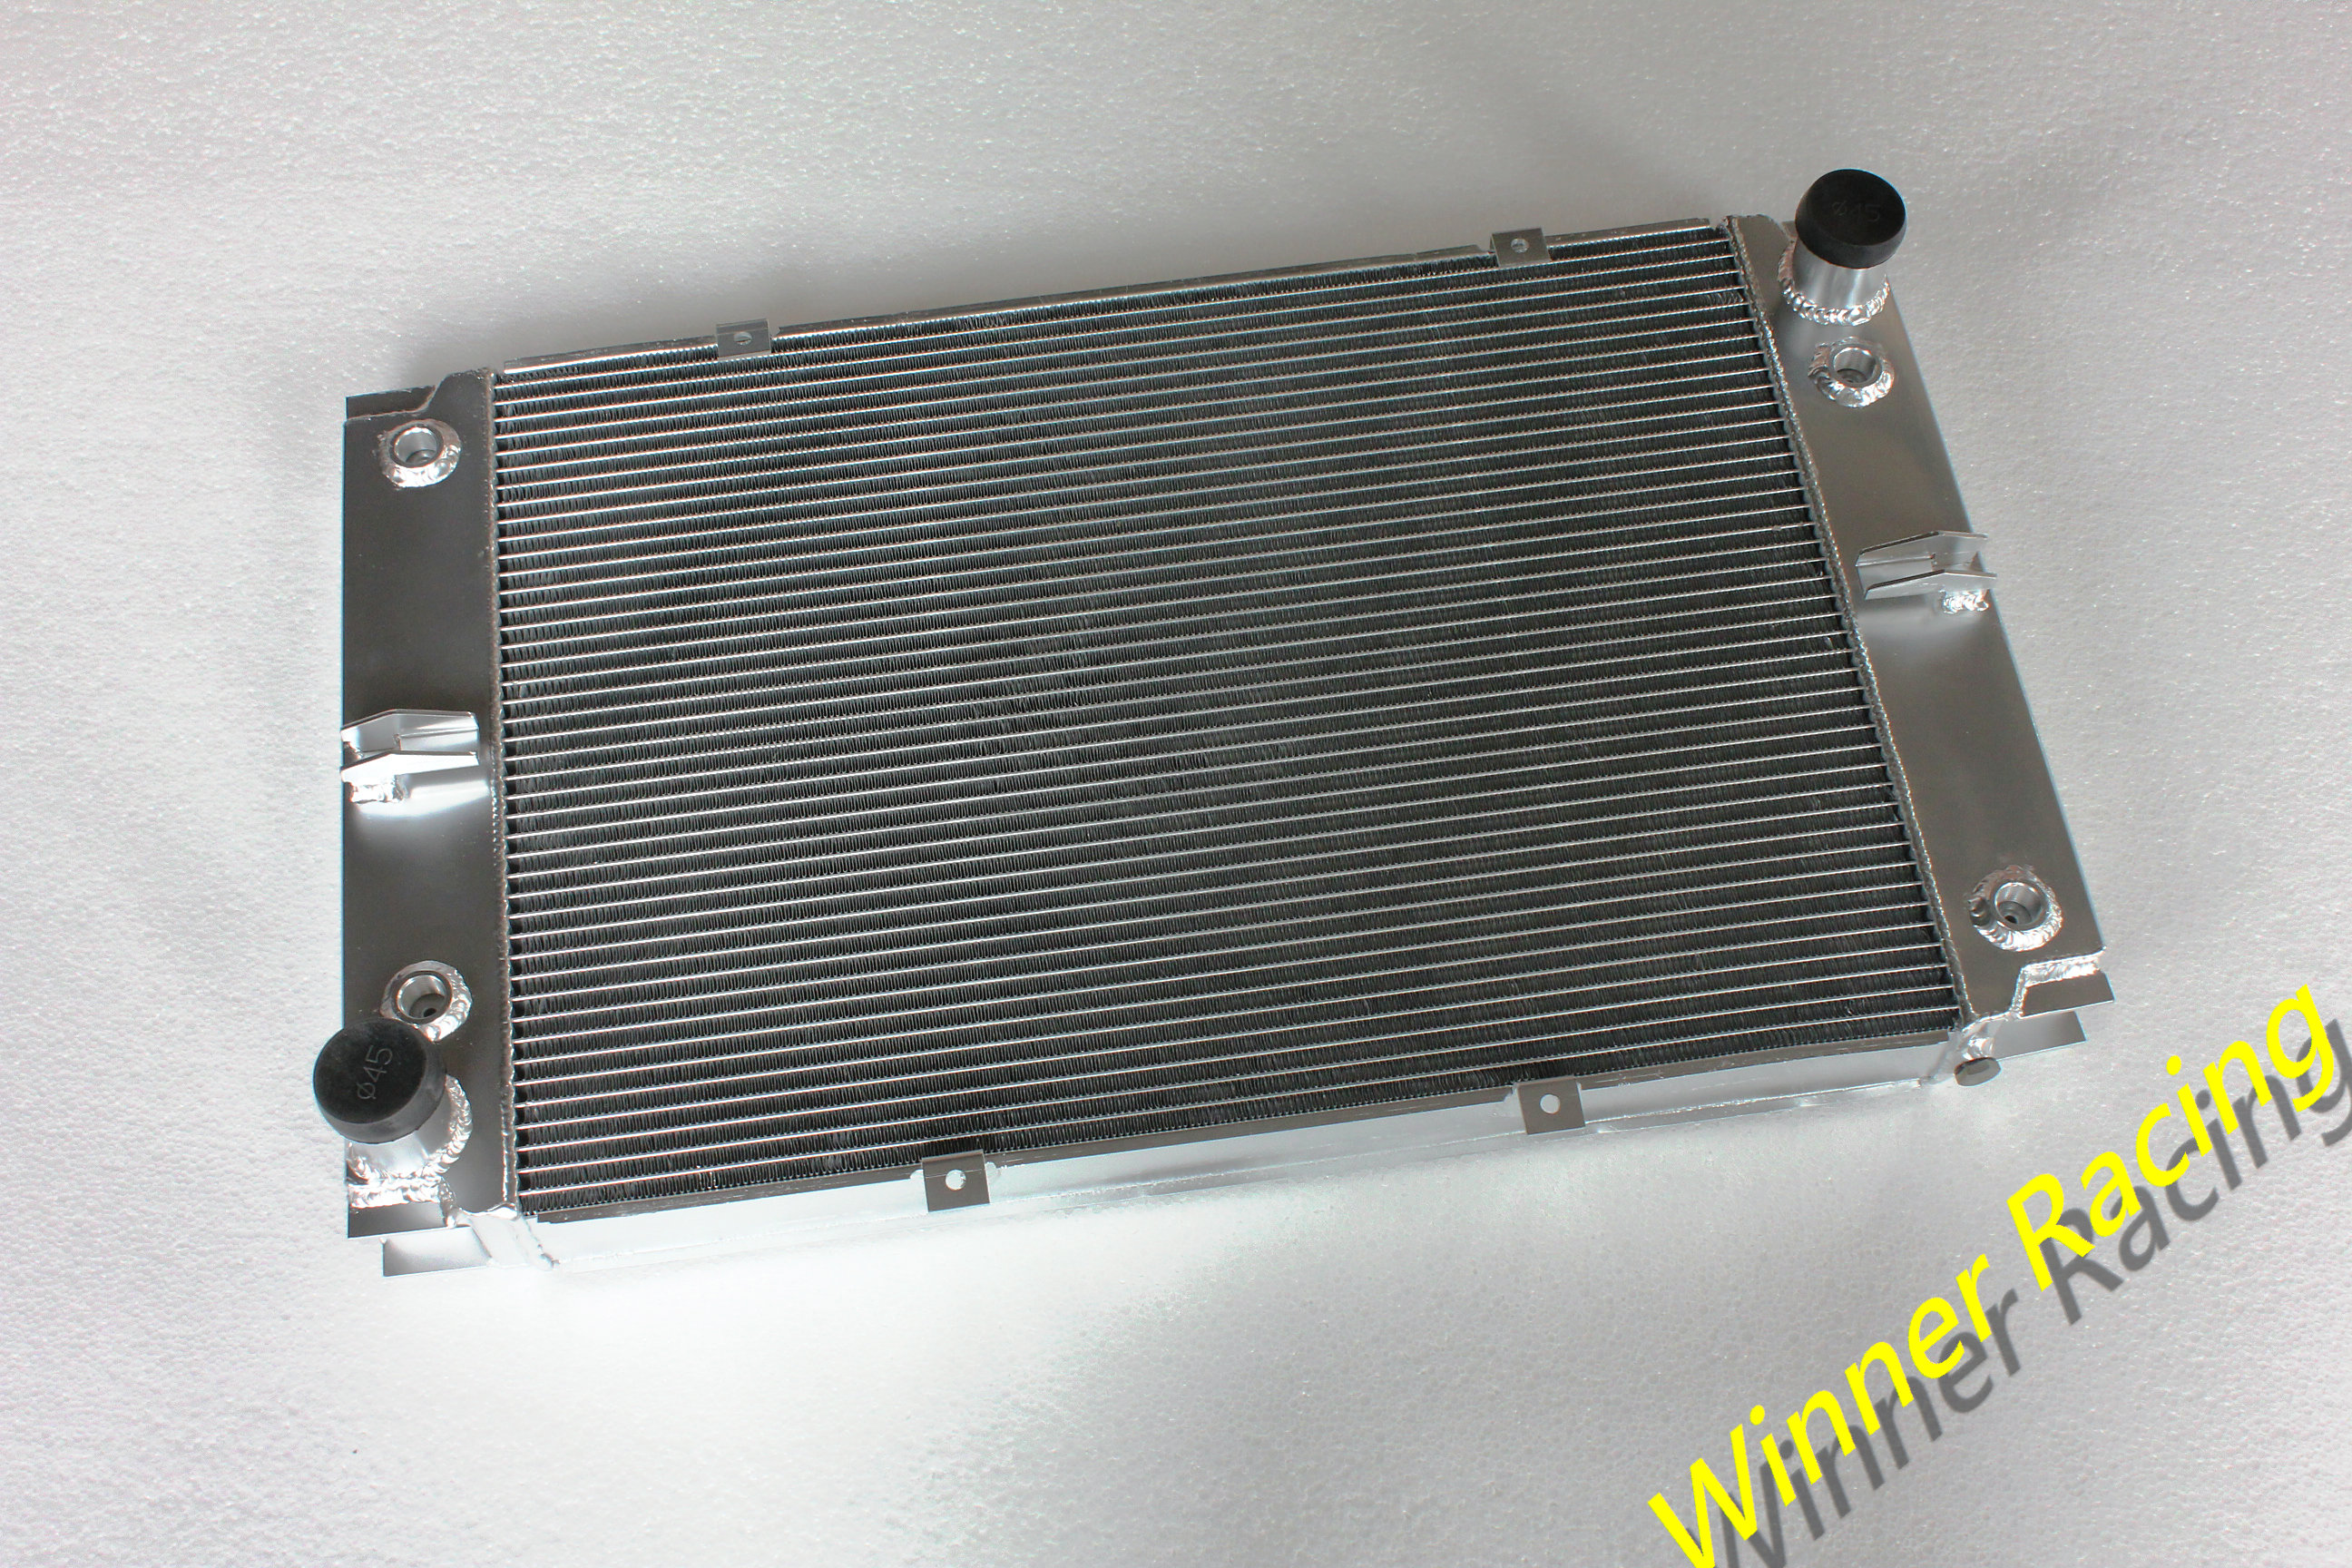 56mm Aluminum Alloy Radiator For Porsche 928 with 2 coolers on both sides